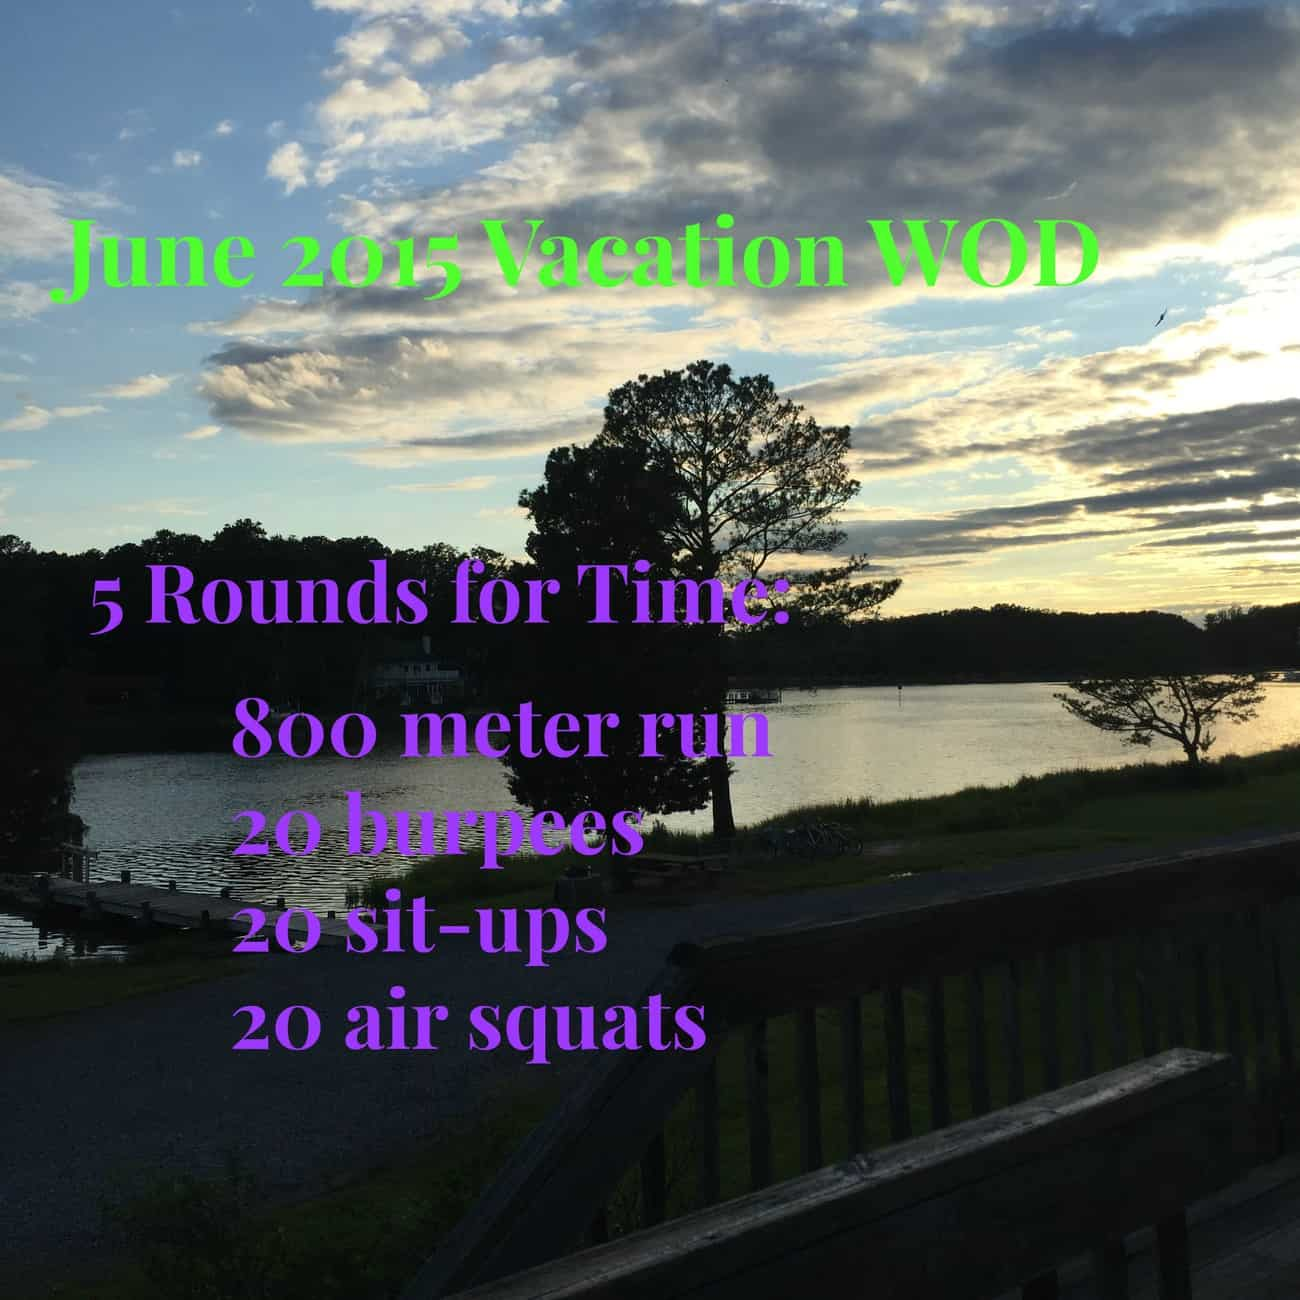 Vacation WOD